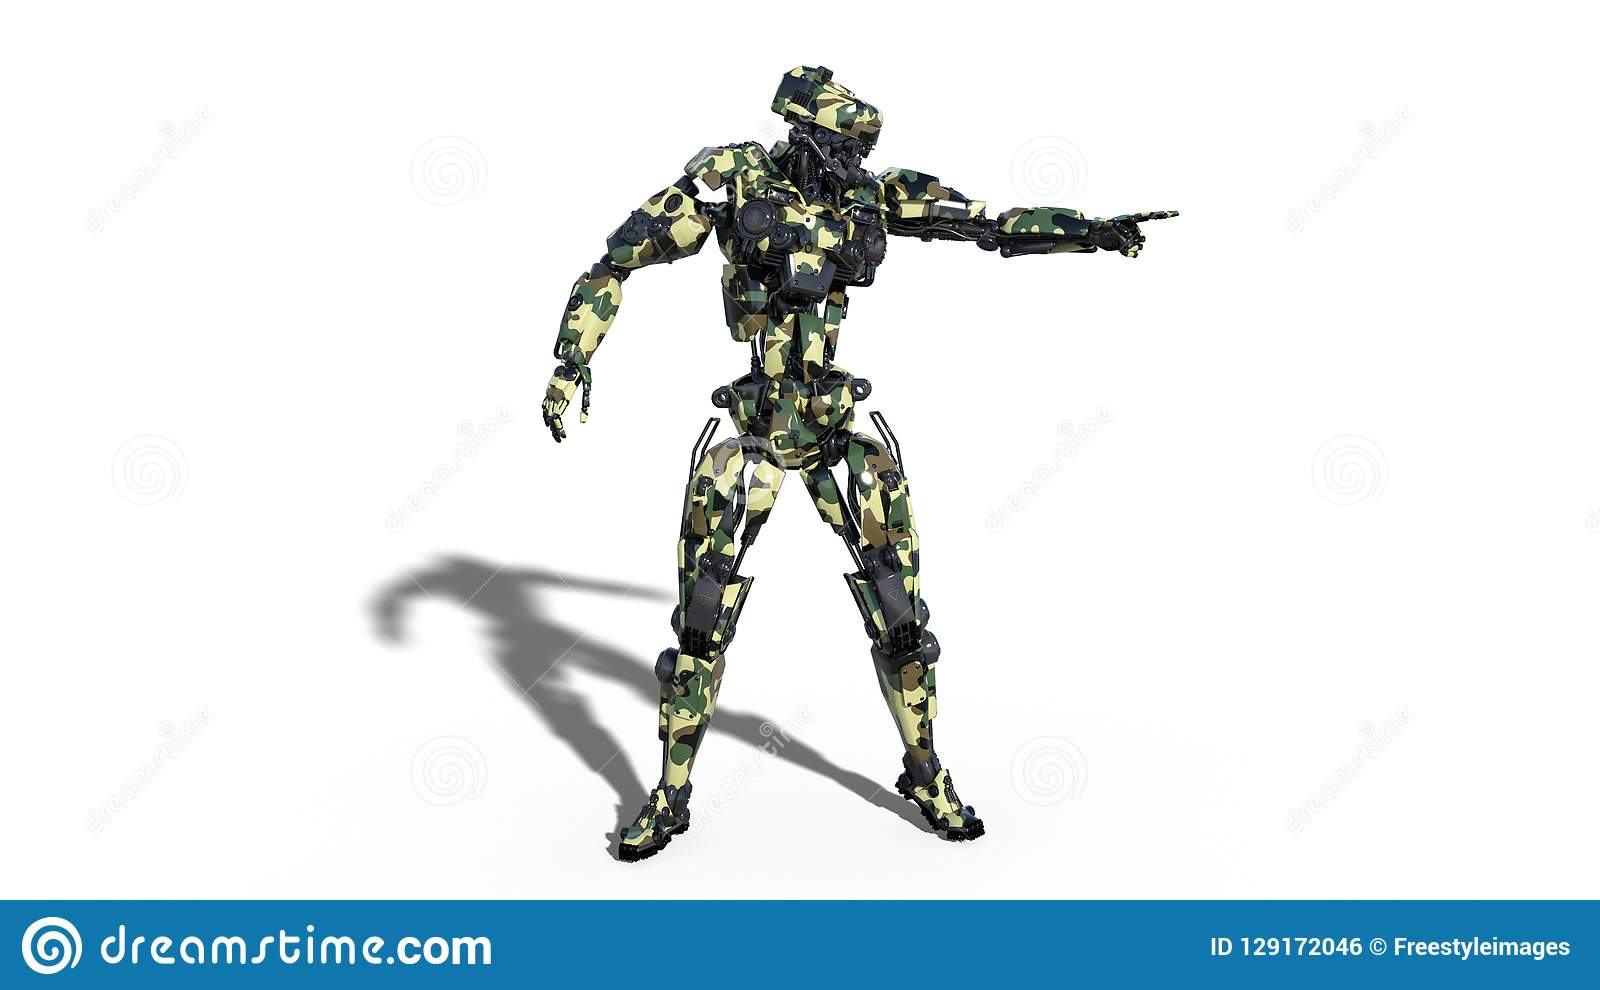 Army robot, armed forces cyborg pointing, military android soldier isolated on white background, 3D render